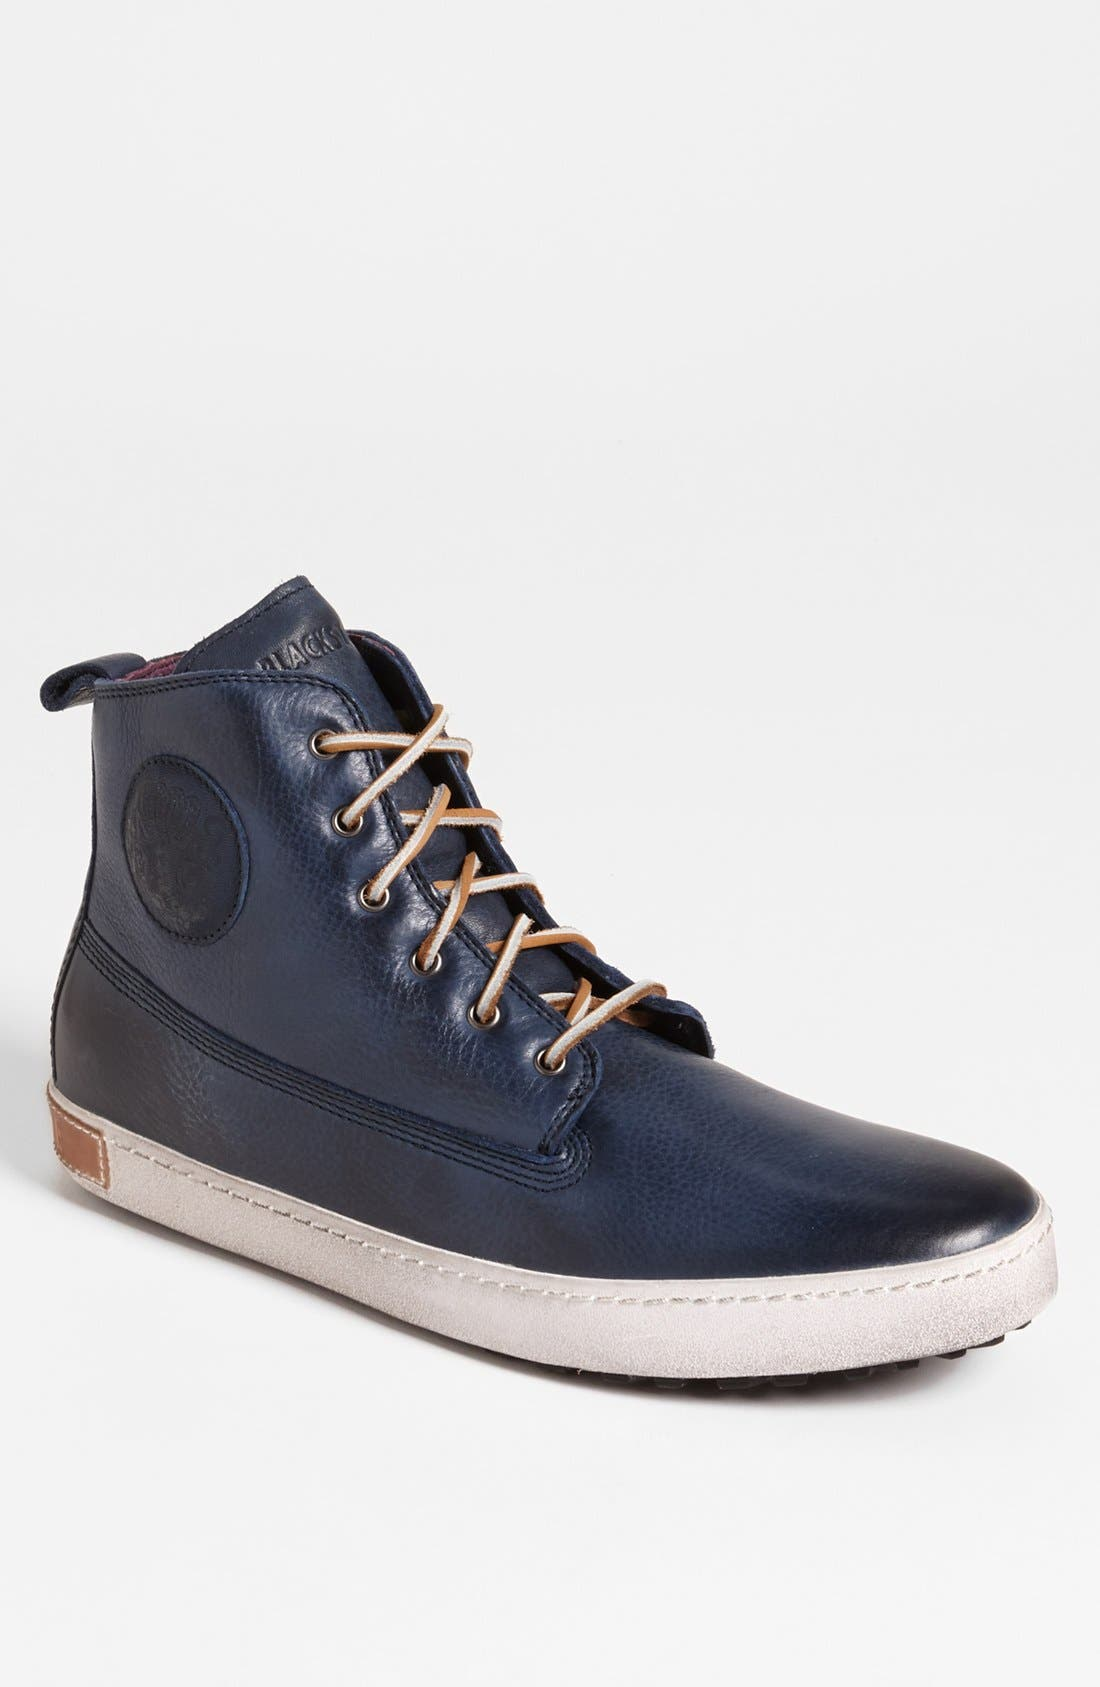 Alternate Image 1 Selected - Blackstone 'AM 02' High Top Sneaker